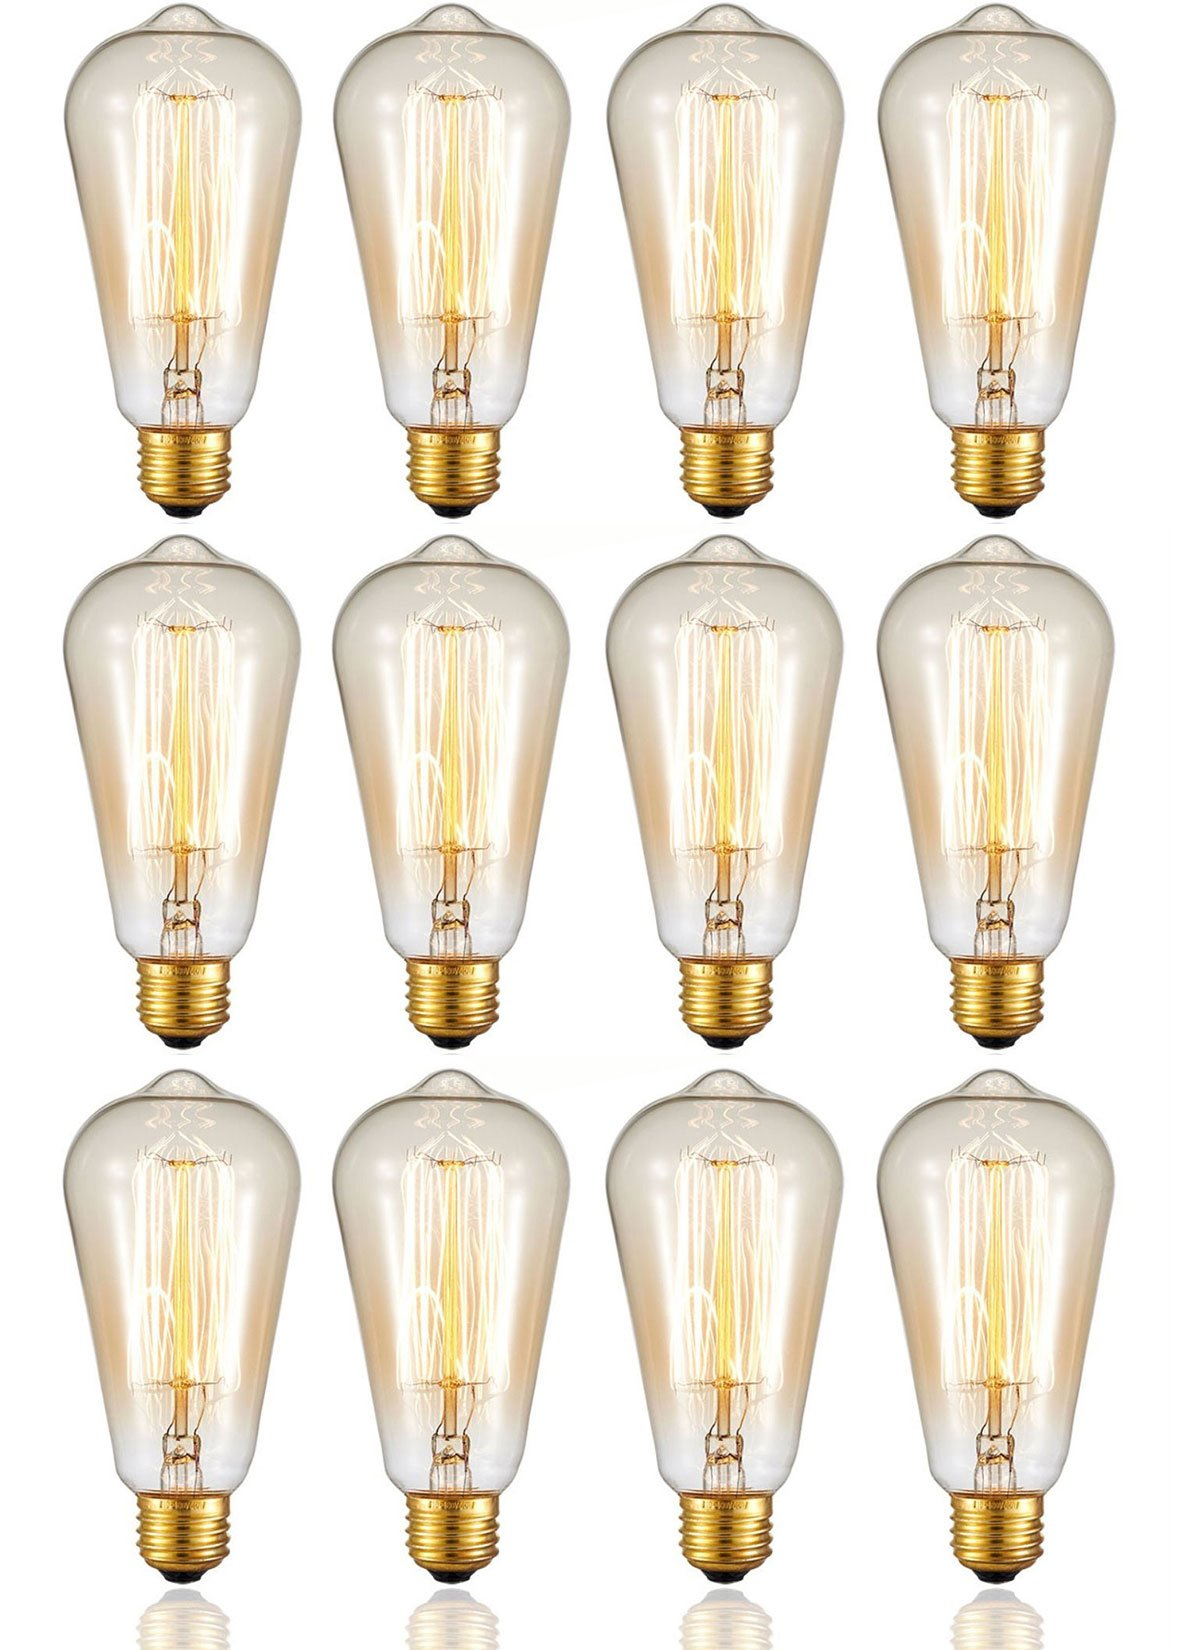 Ohr Lighting Edison Incandescent Light Bulb Vintage 40 Watt Amber Warm Dimmable Antique Squirrel Cage E26 Base 12 Pack